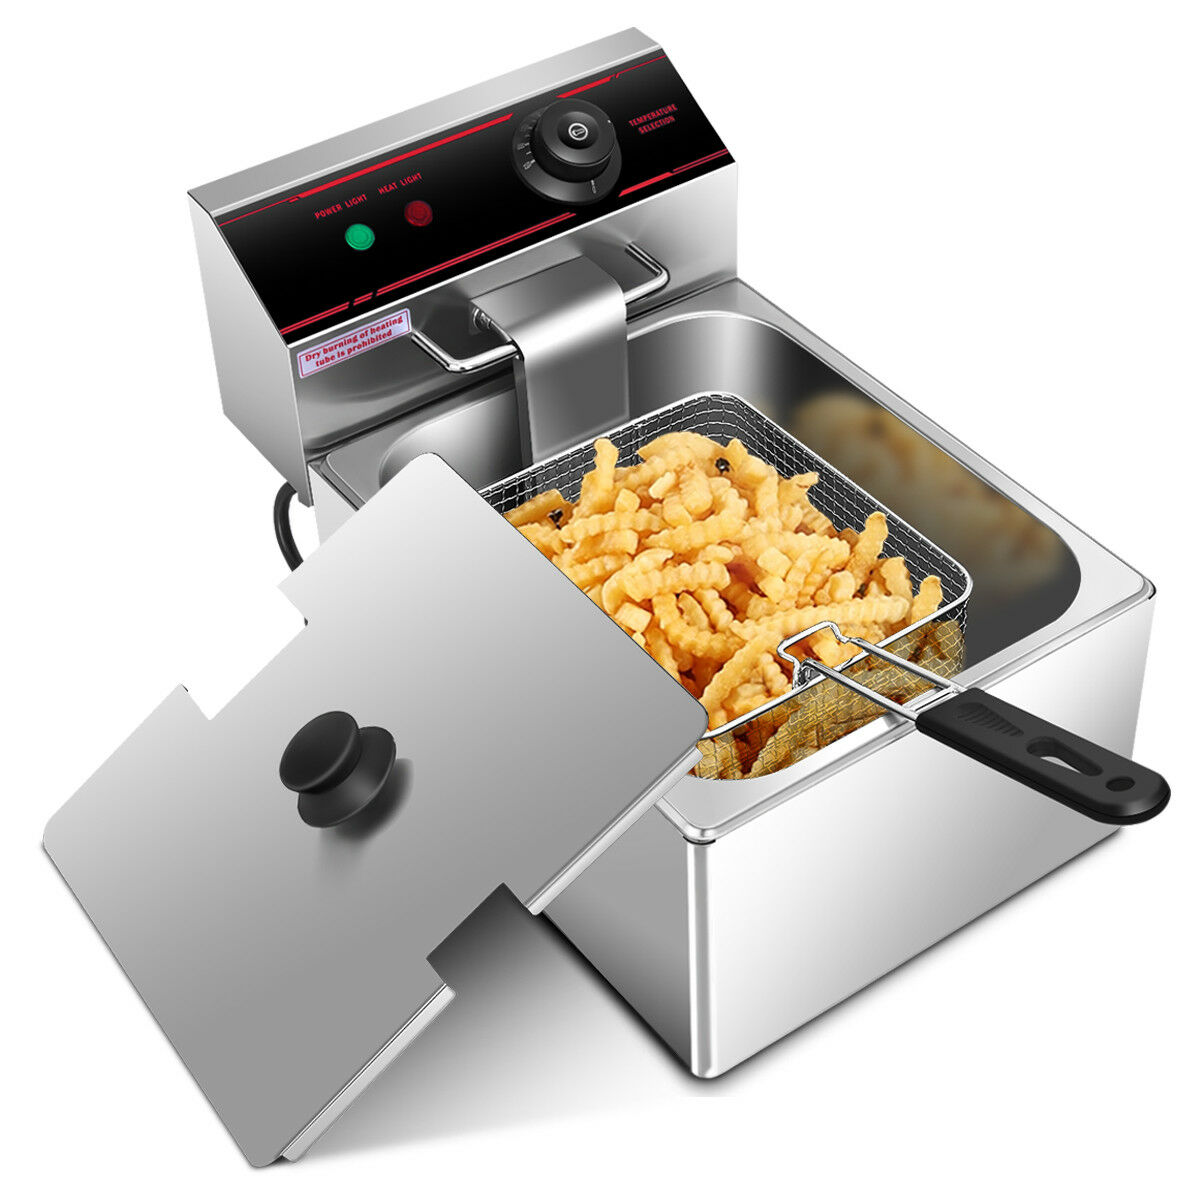 Gymax 2500W Deep Fryer Electric Commercial Tabletop Restaurant Frying w/ Basket Scoop